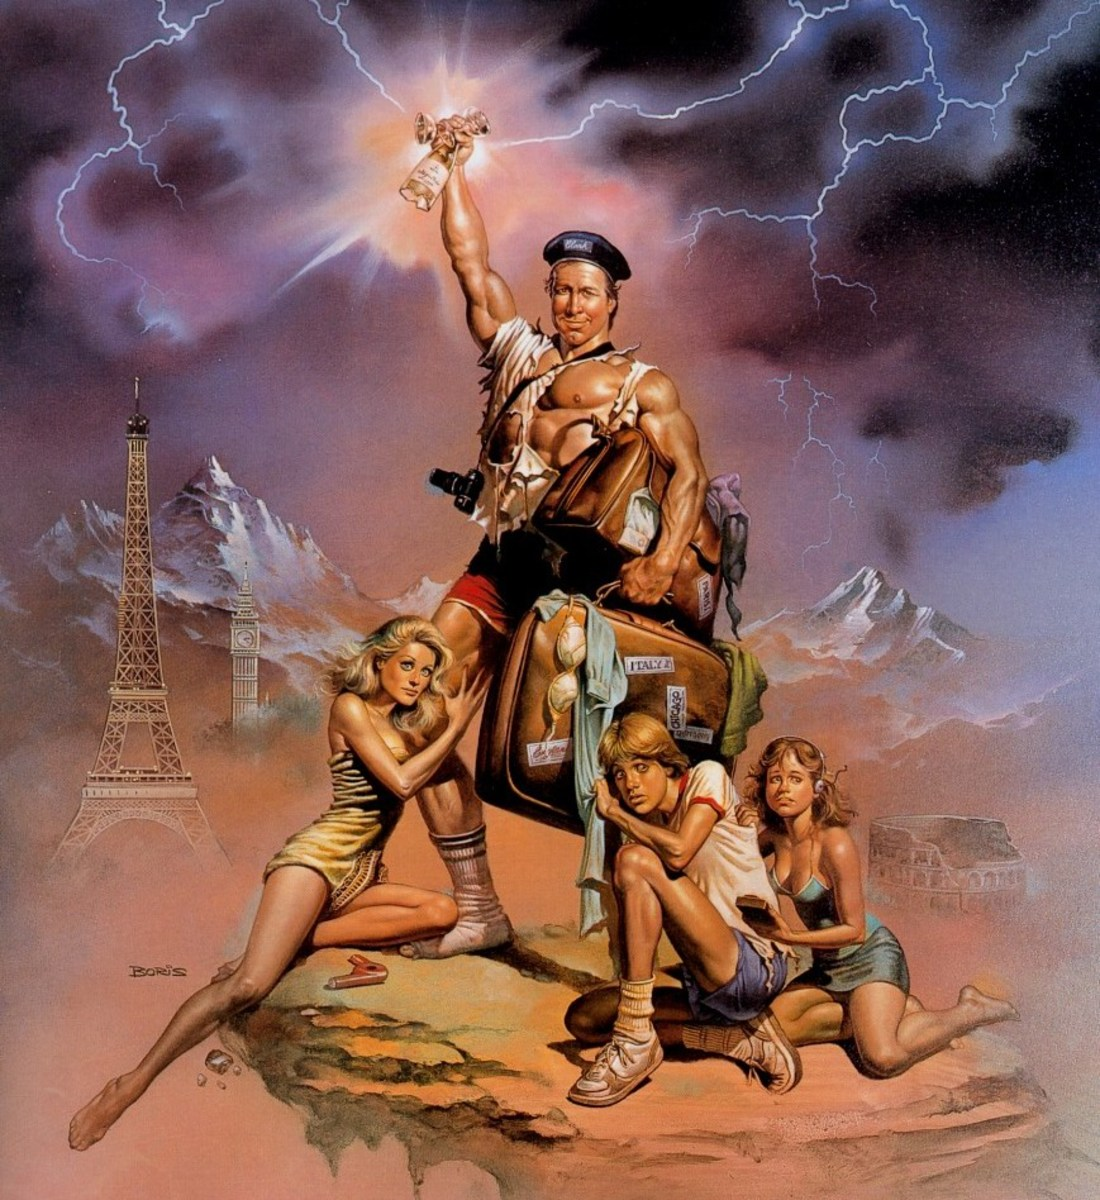 European Vacation - art by Boris Vallejo